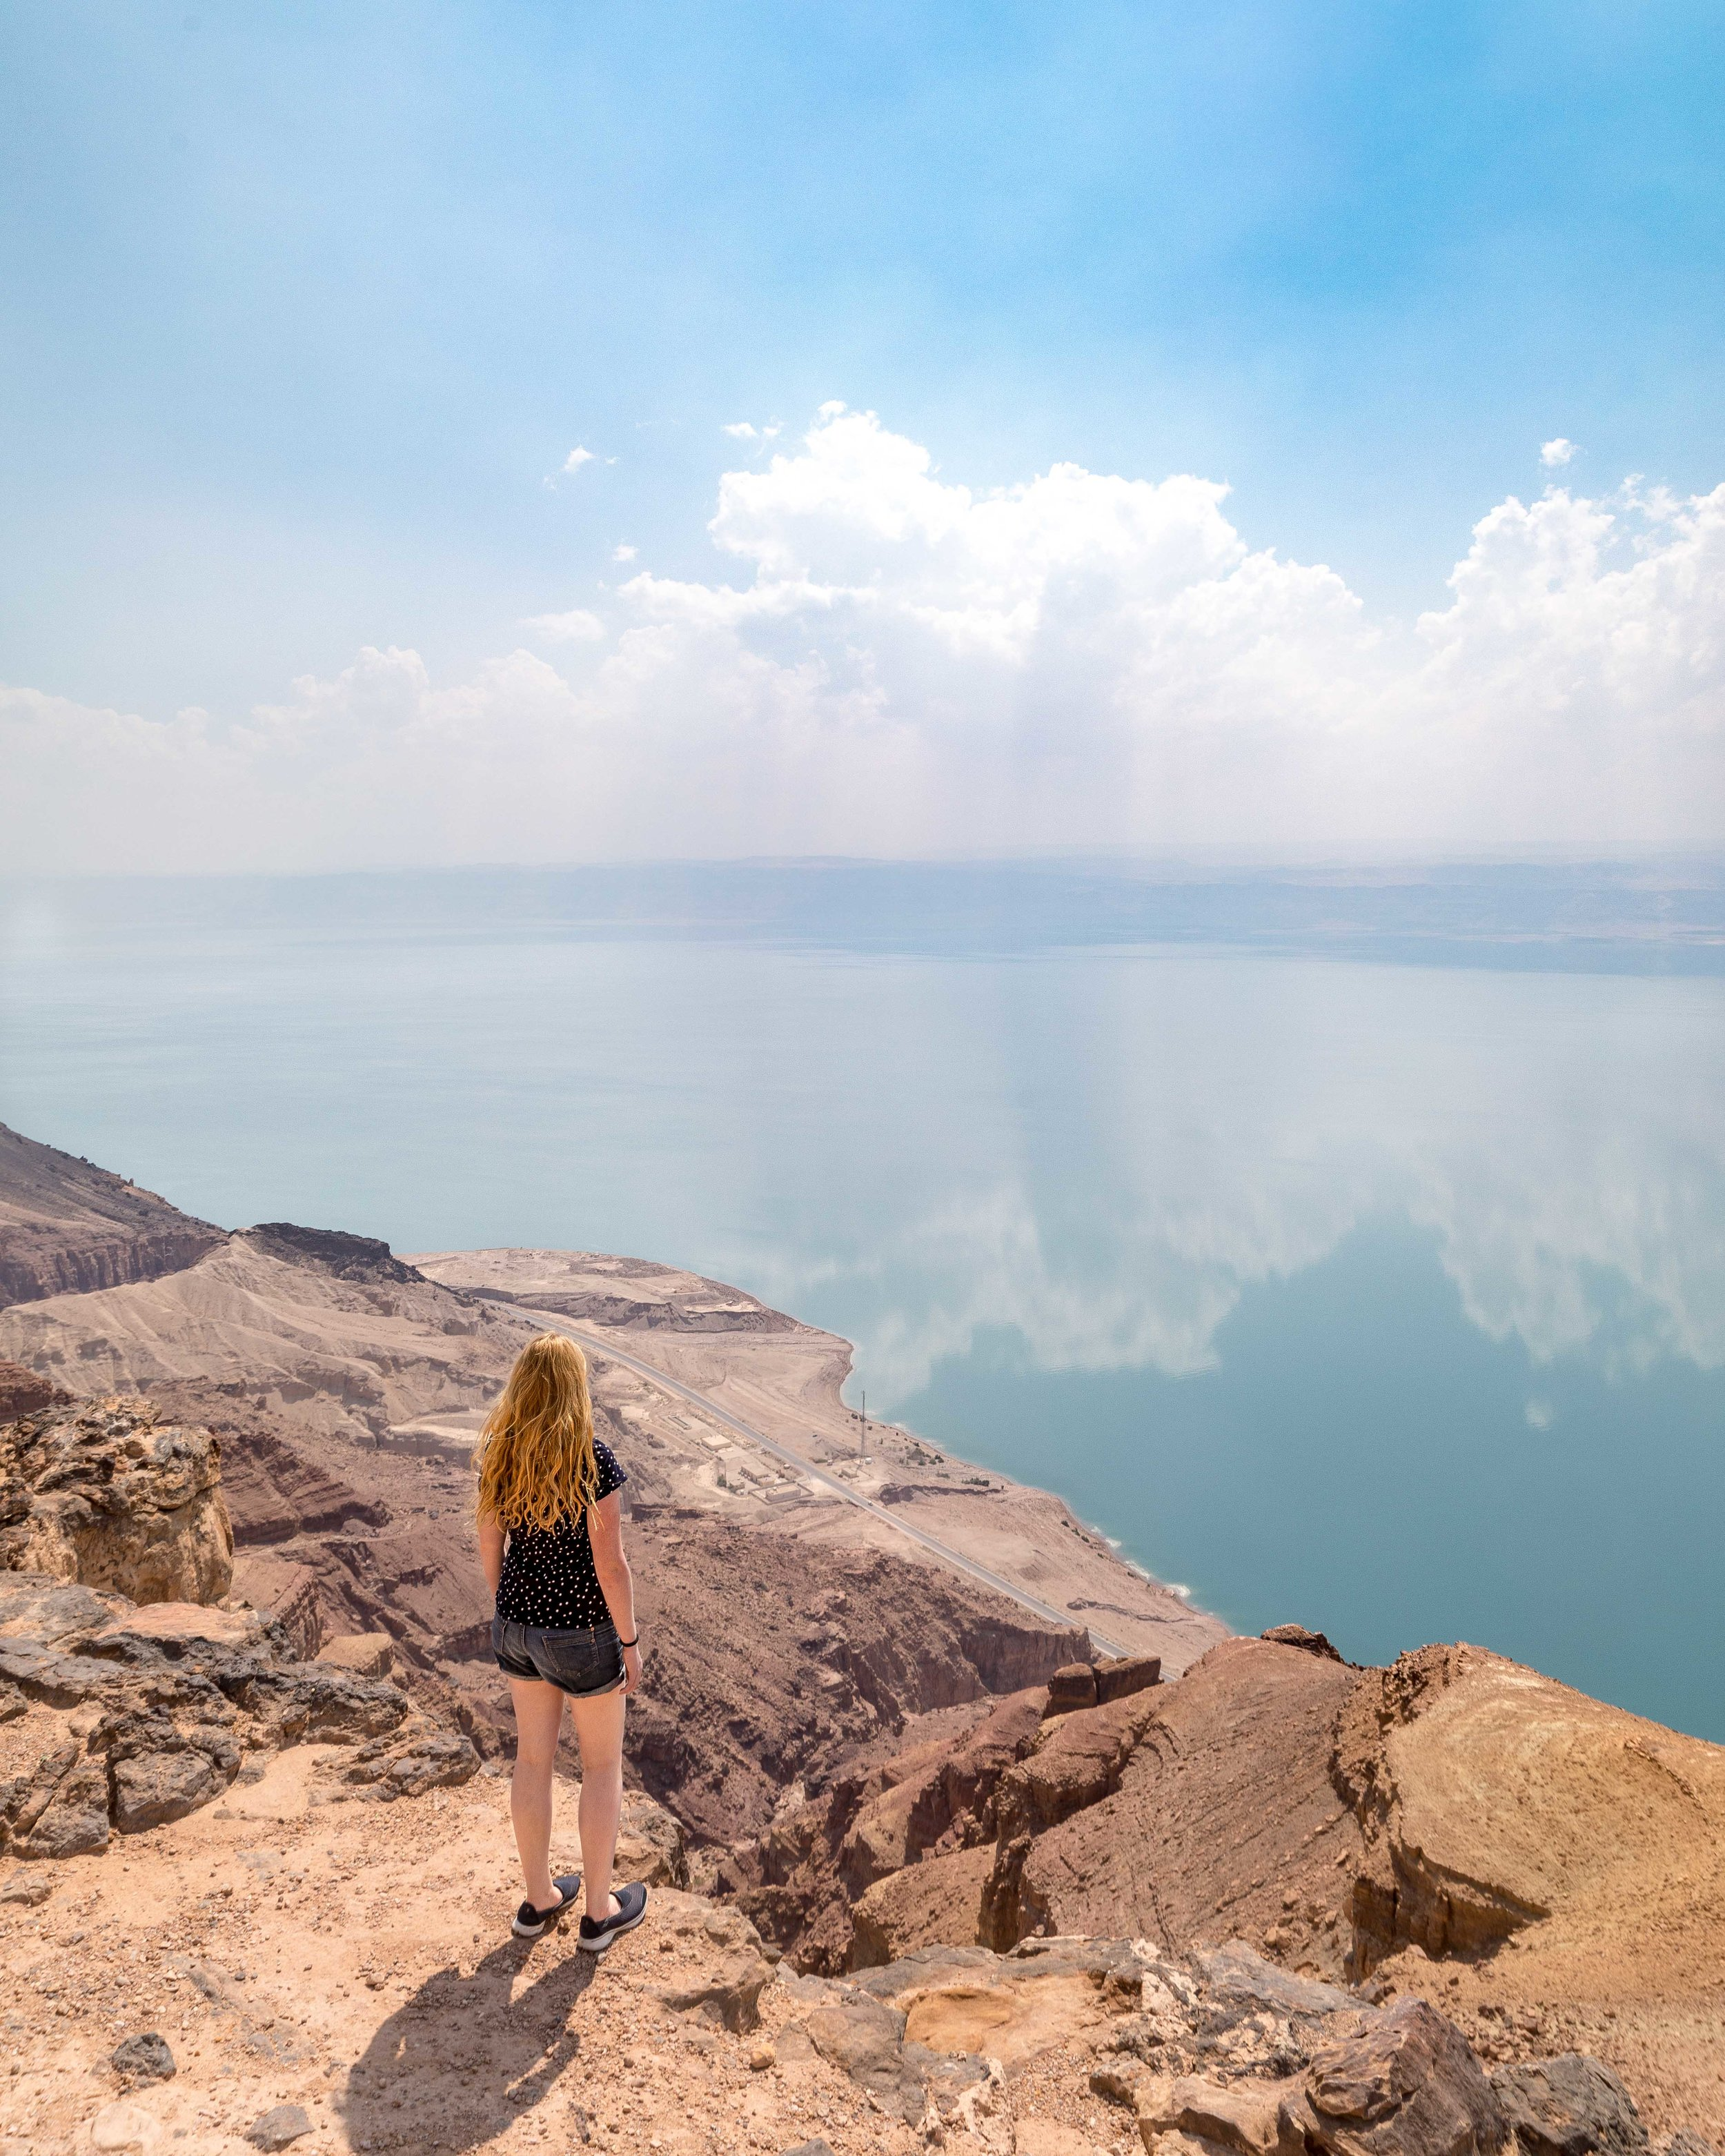 Things to do in the Dead Sea: hike the cliffs